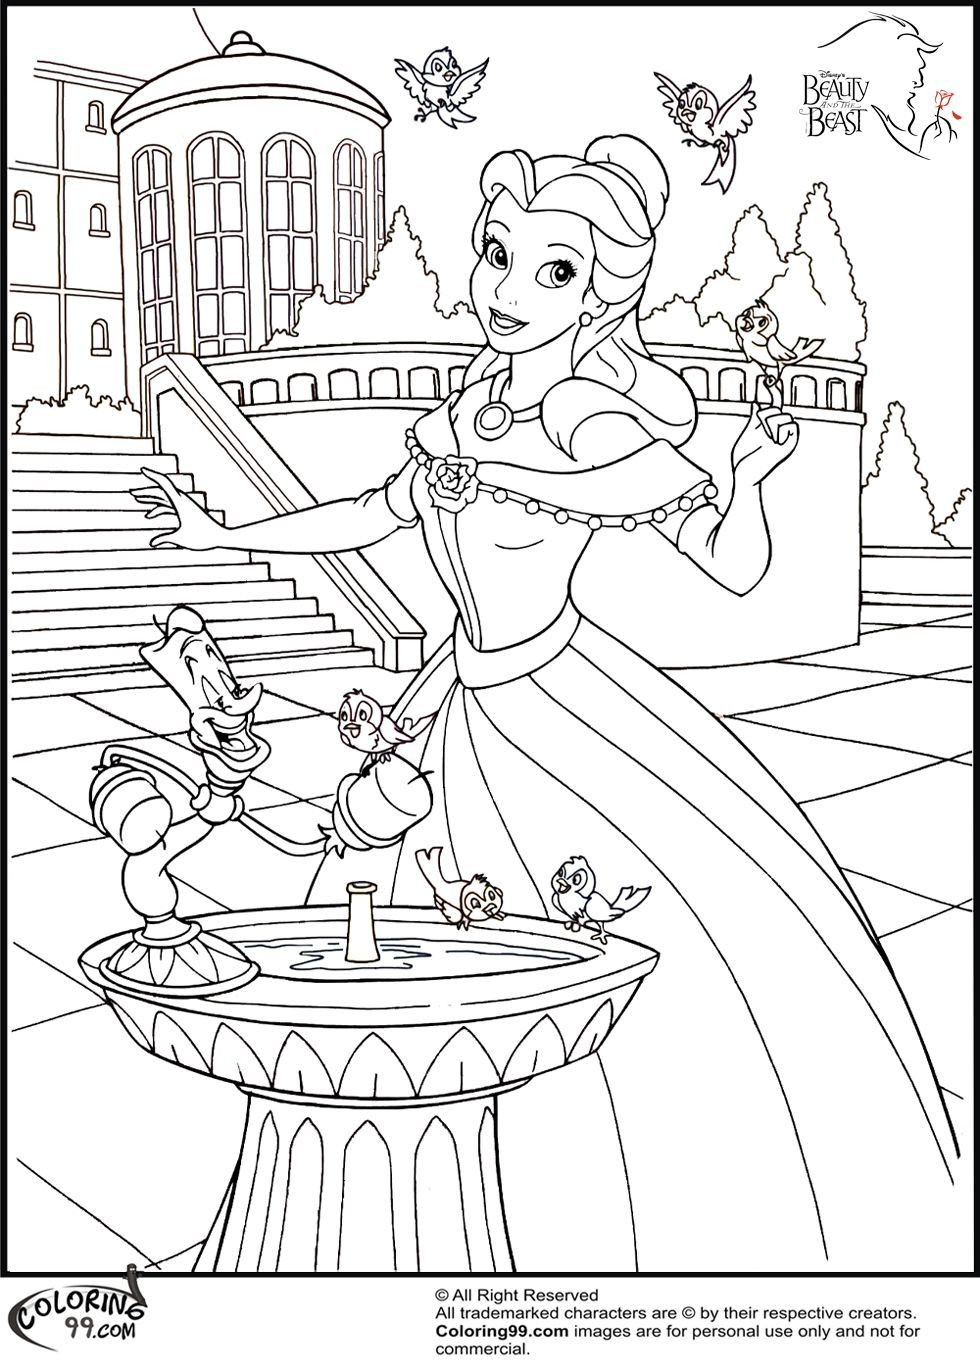 Princess house coloring pages - Disney Princess Belle Coloring Pages